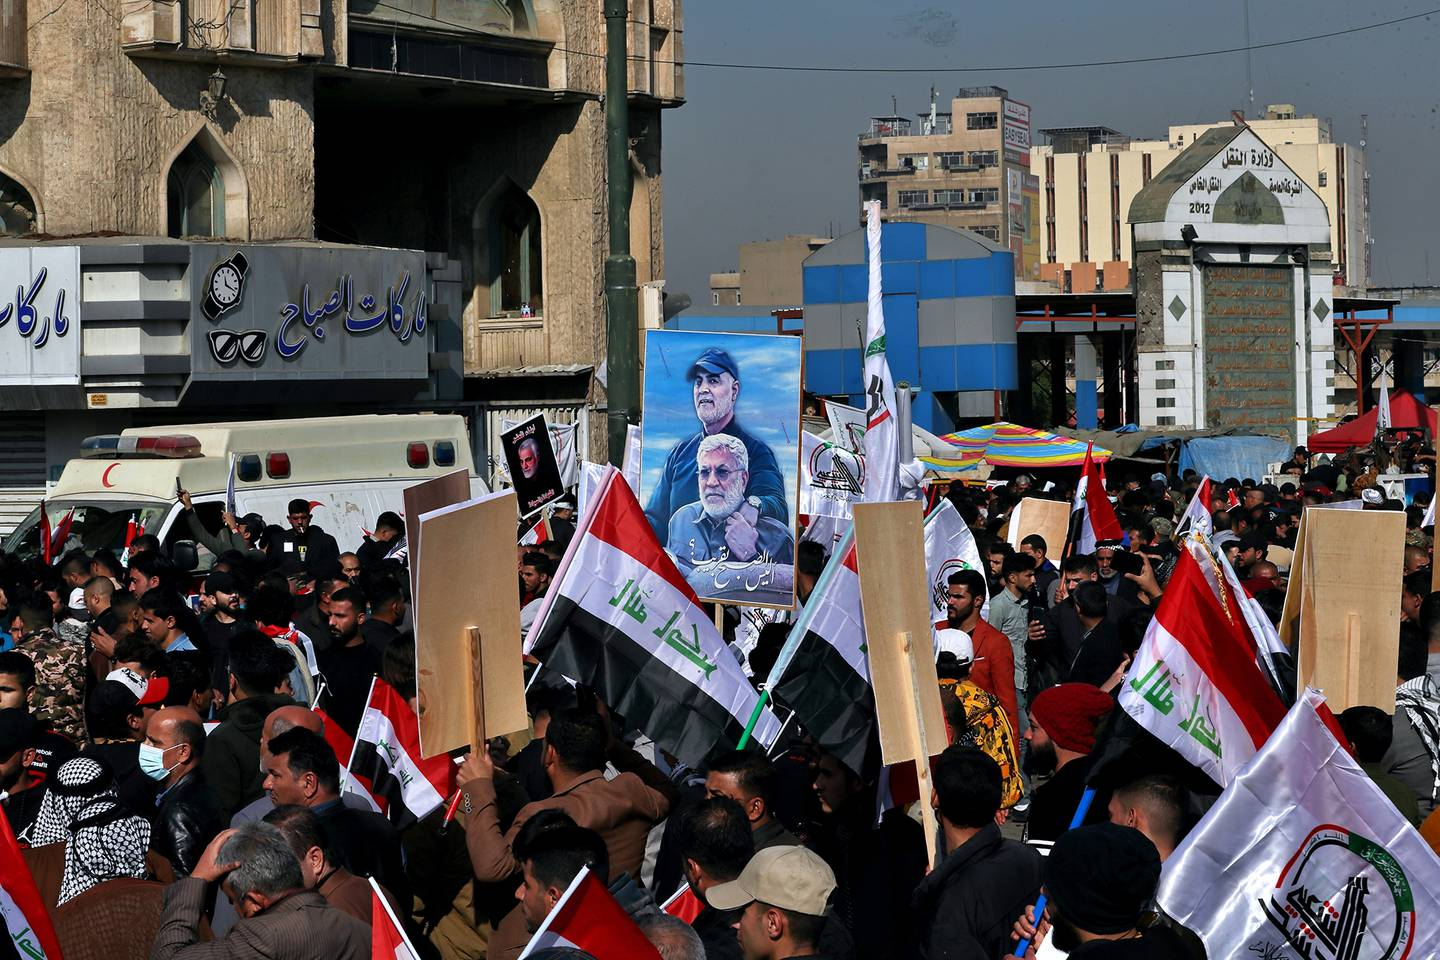 Supporters of the Popular Mobilization Forces hold a poster of Abu Mahdi al-Muhandis, deputy commander of the Popular Mobilization Forces, front, and Gen. Qassem Soleimani, head of Iran's Quds force during a protest, in Tahrir Square, Iraq, Sunday, Jan. 3, 2021.